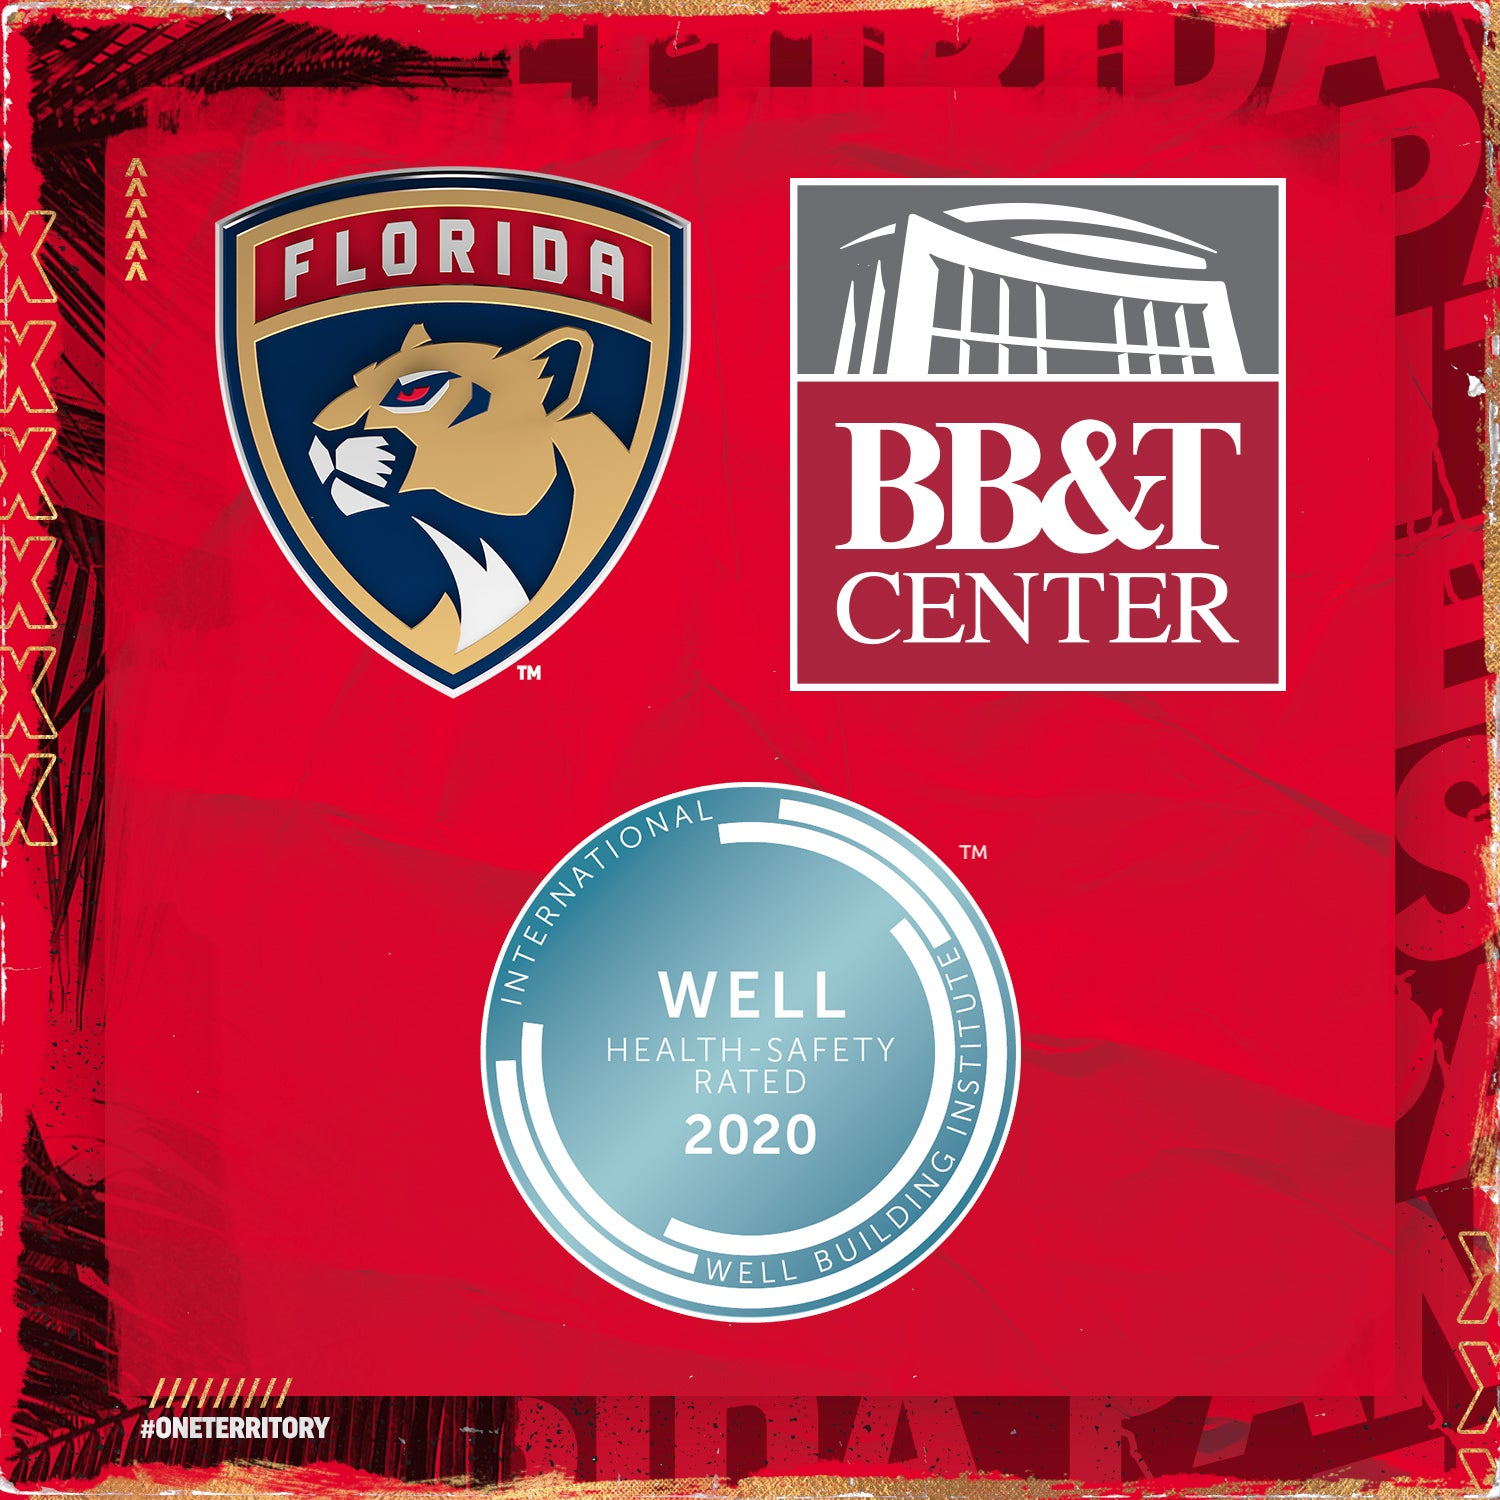 Florida Panthers' BB&T Center Becomes First NHL Arena to Achieve the WELL Health-Safety Rating